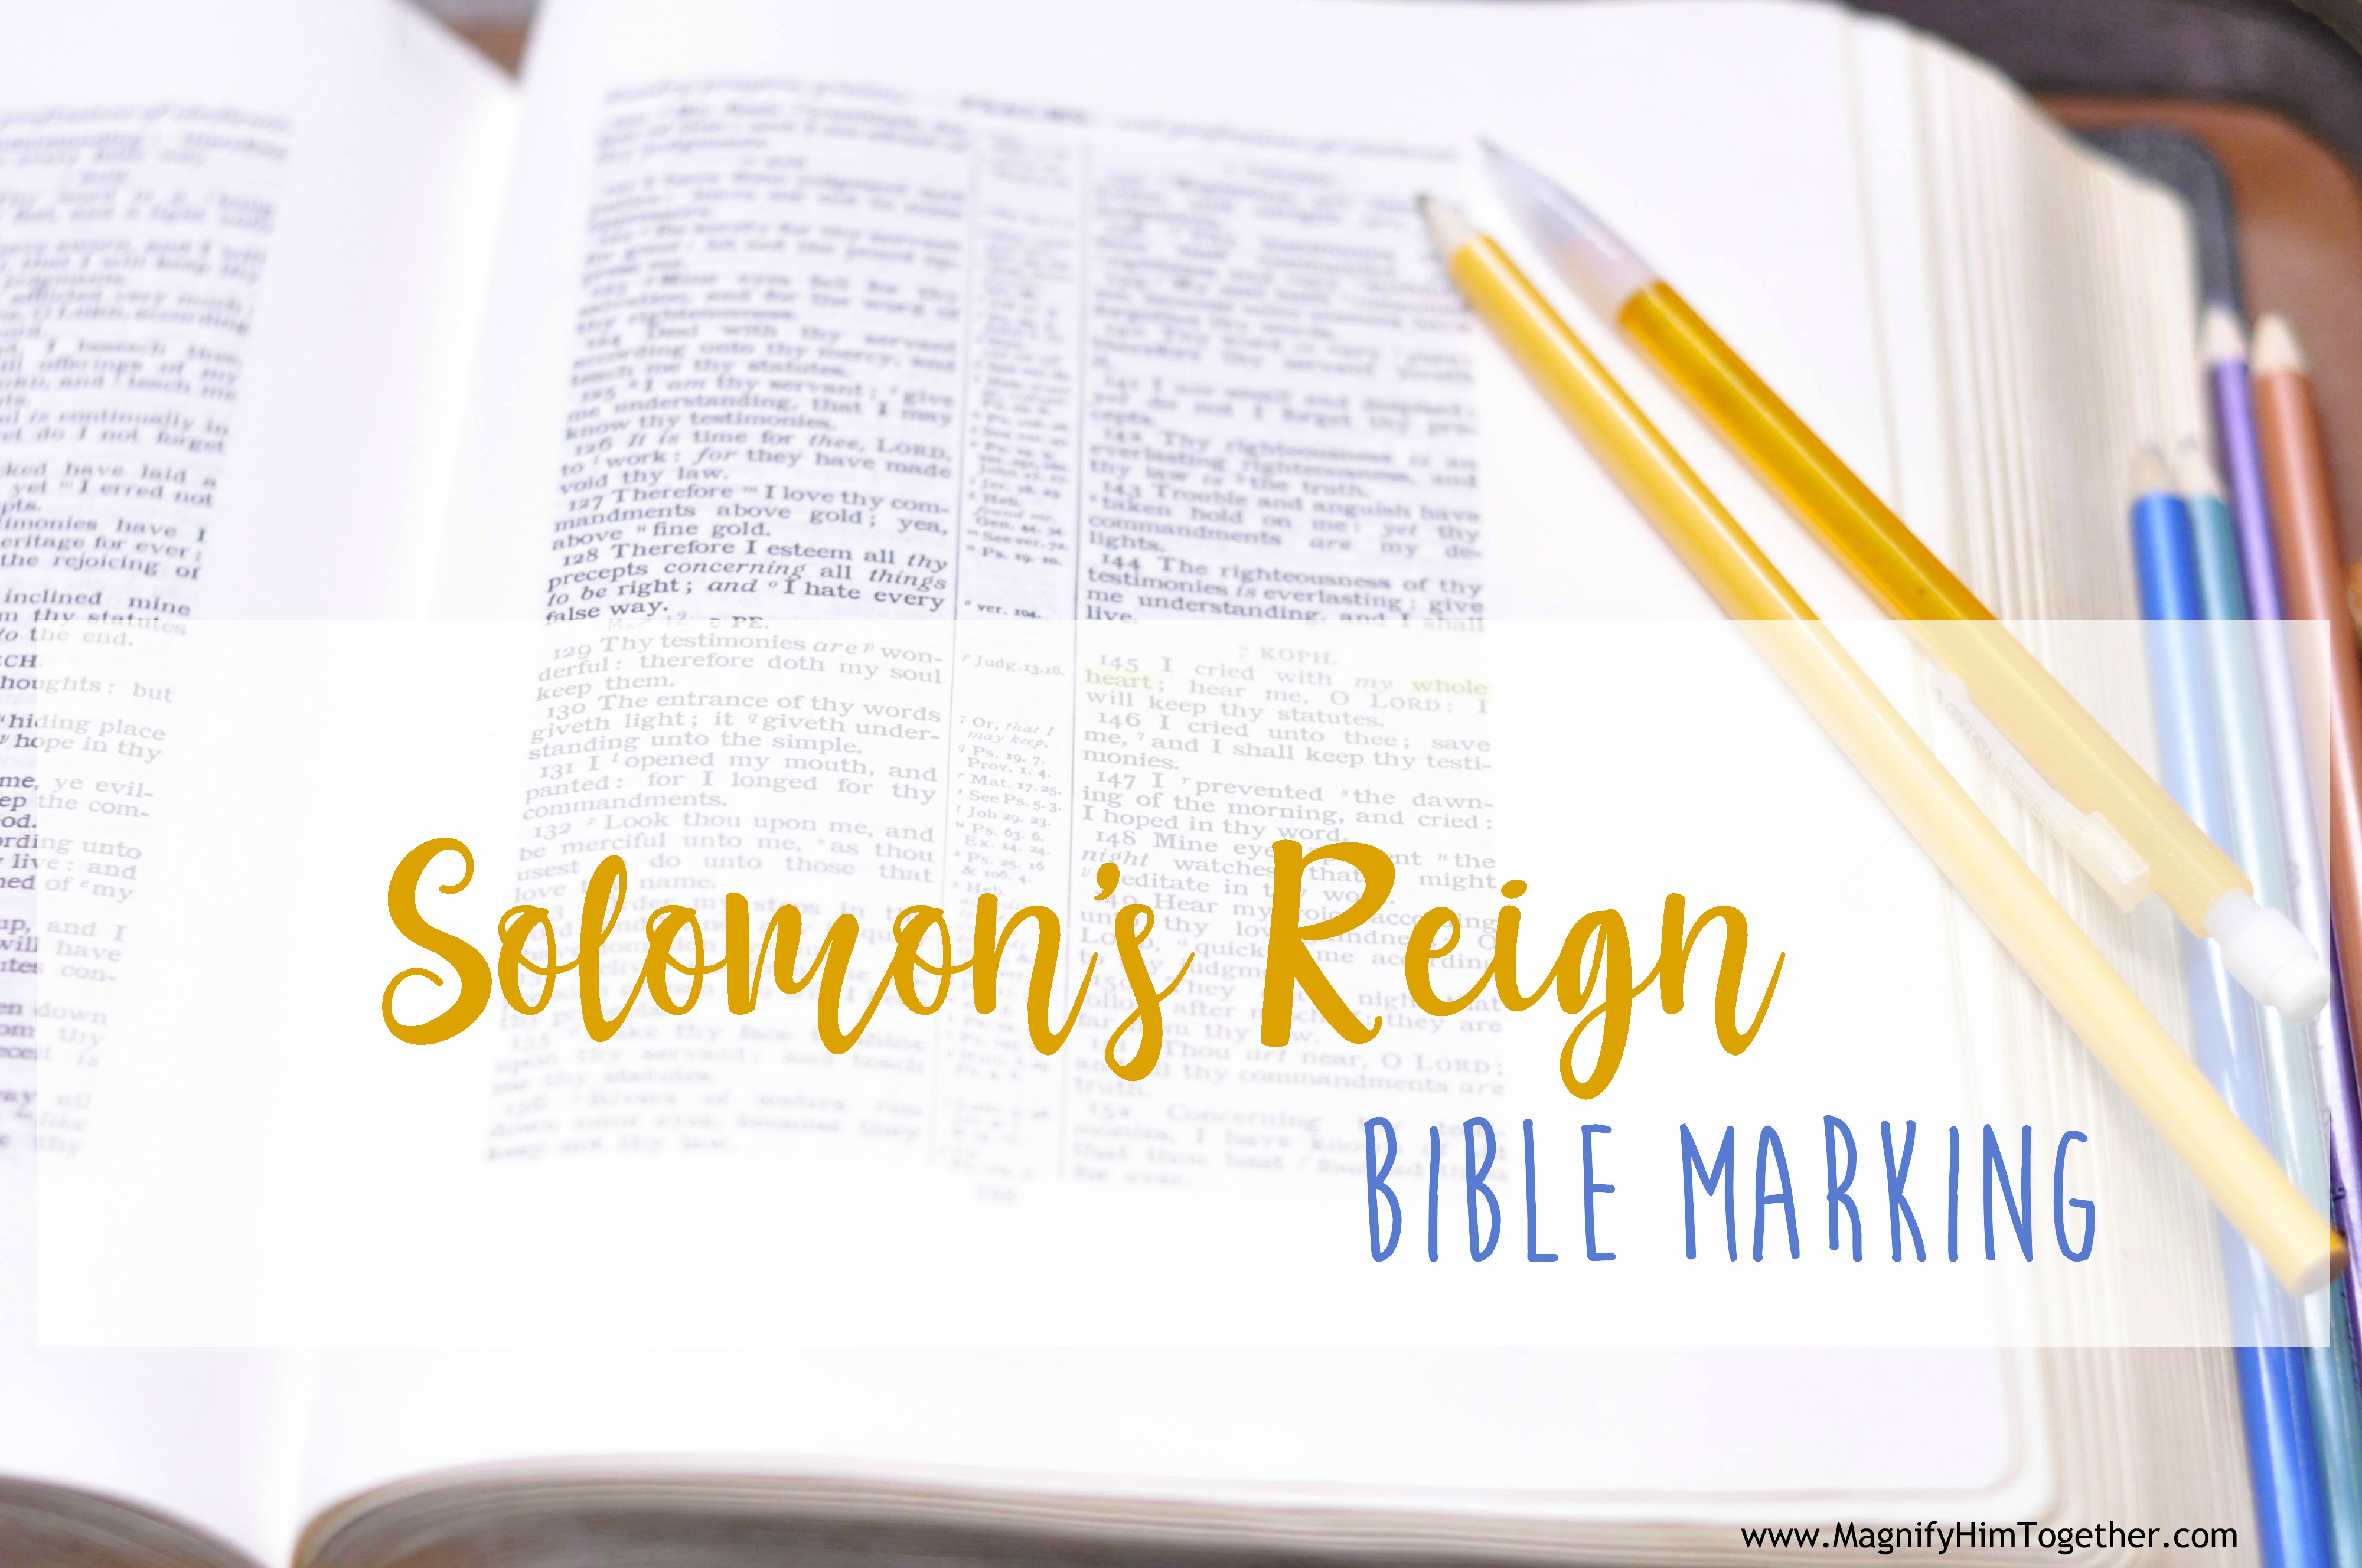 Magnify Him Together – Bible Resources